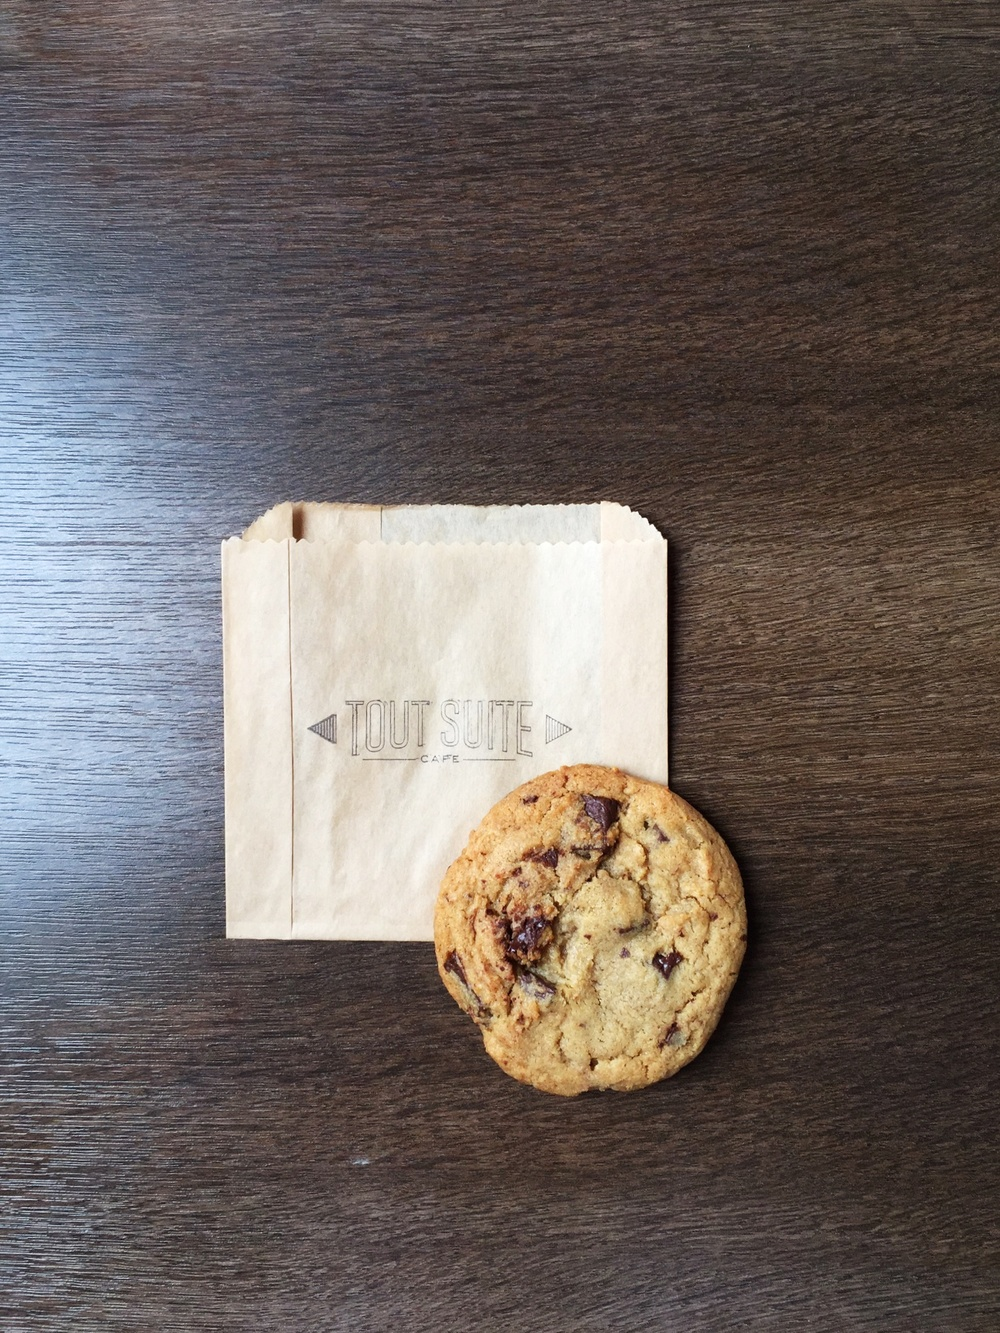 Tout Suite Cafe Houston chocolate chip cookie